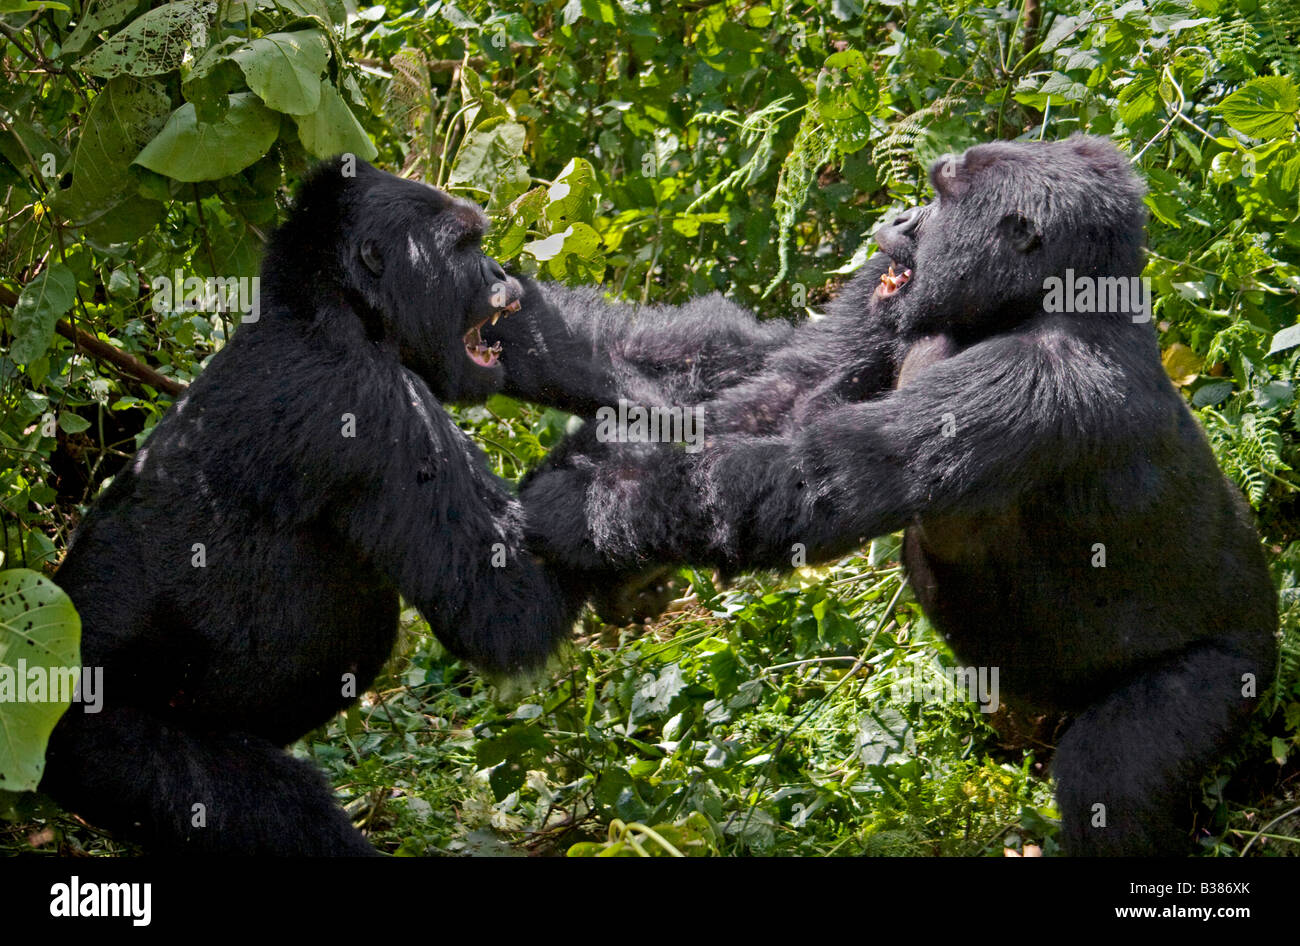 Play fighting creates a pecking order in MOUNTAIN GORILLAS  of the KWITONDA GROUP in VOLCANOES NATIONAL PARK RWANDA - Stock Image